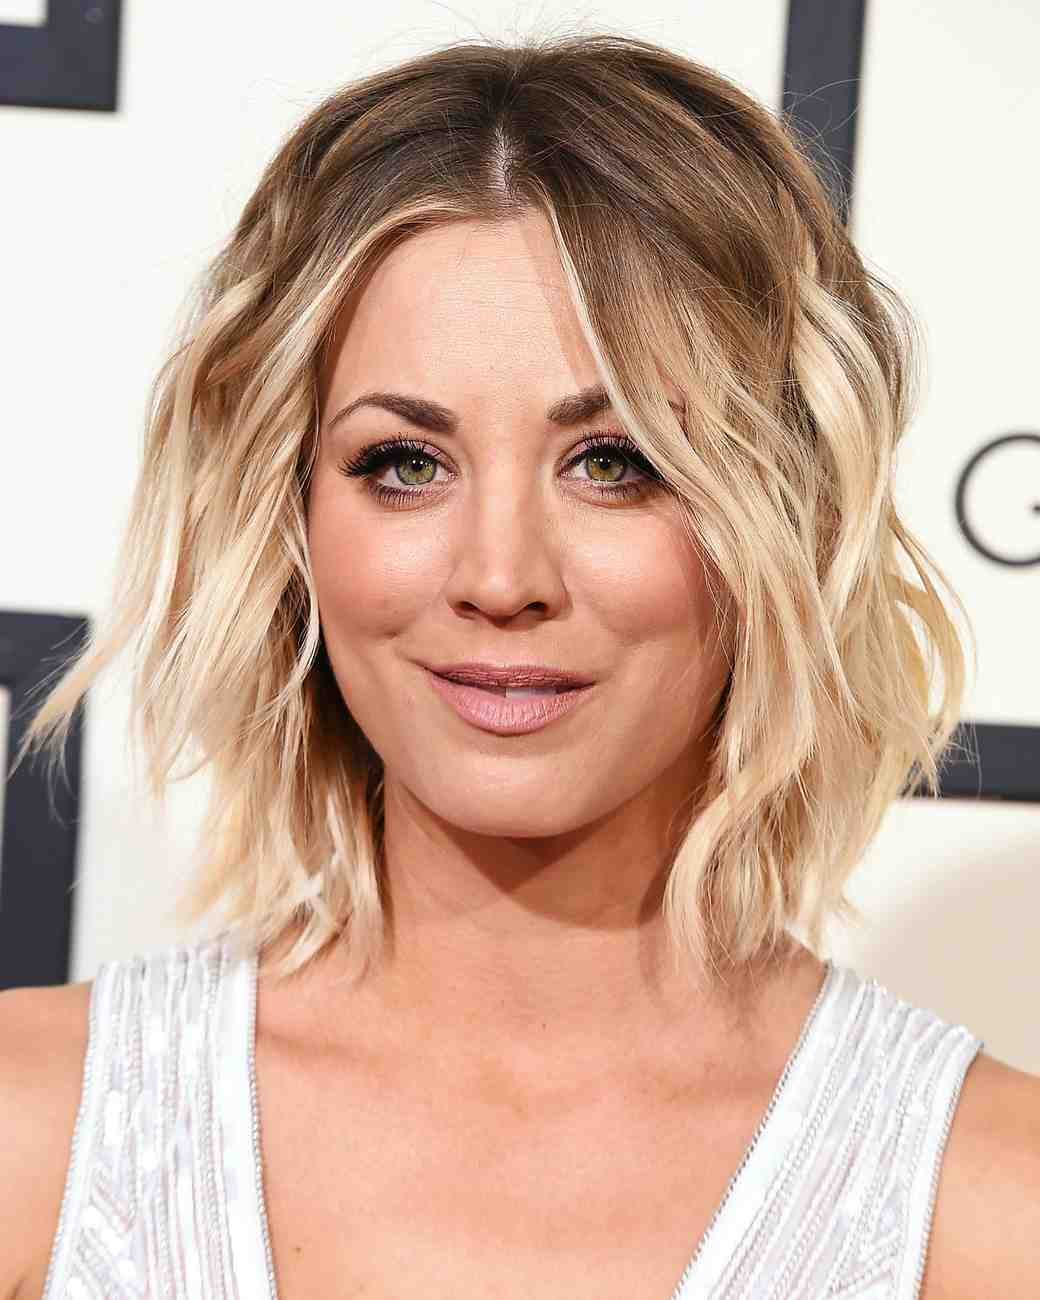 Kaley Cuoco Hair